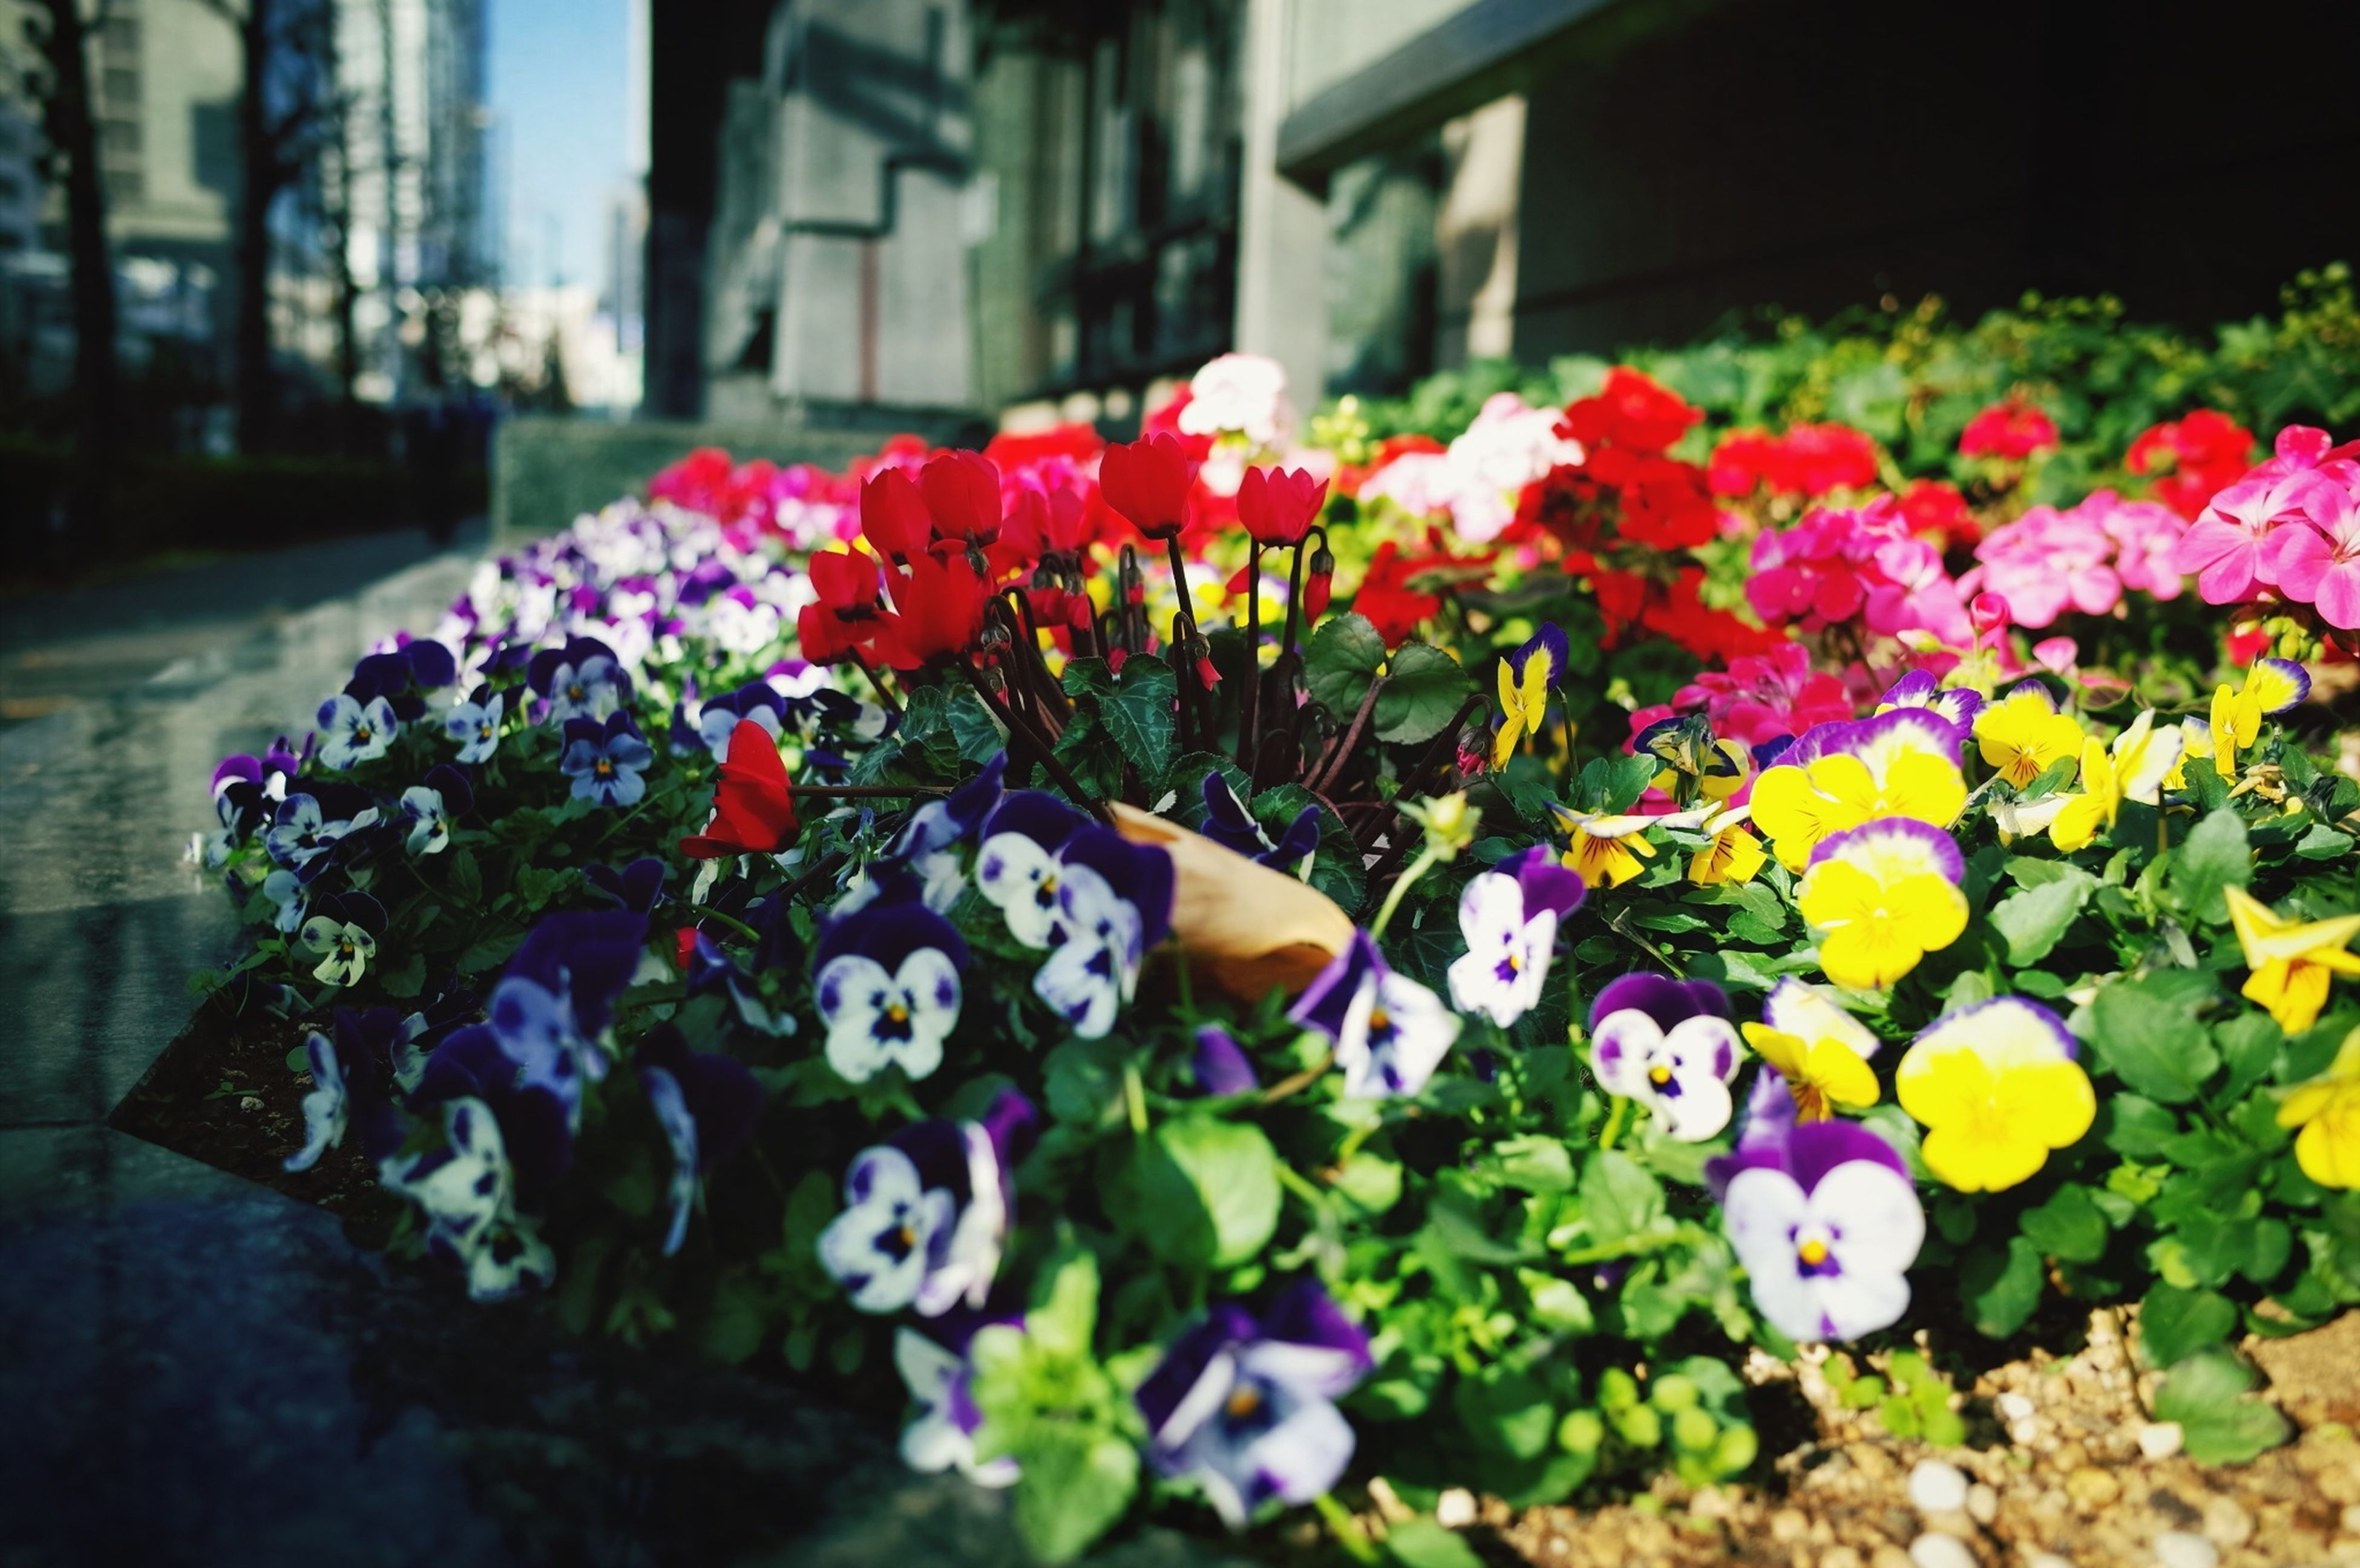 flower, fragility, freshness, petal, multi colored, flower head, blooming, beauty in nature, abundance, pink color, growth, focus on foreground, colorful, nature, purple, plant, selective focus, variation, in bloom, flowerbed